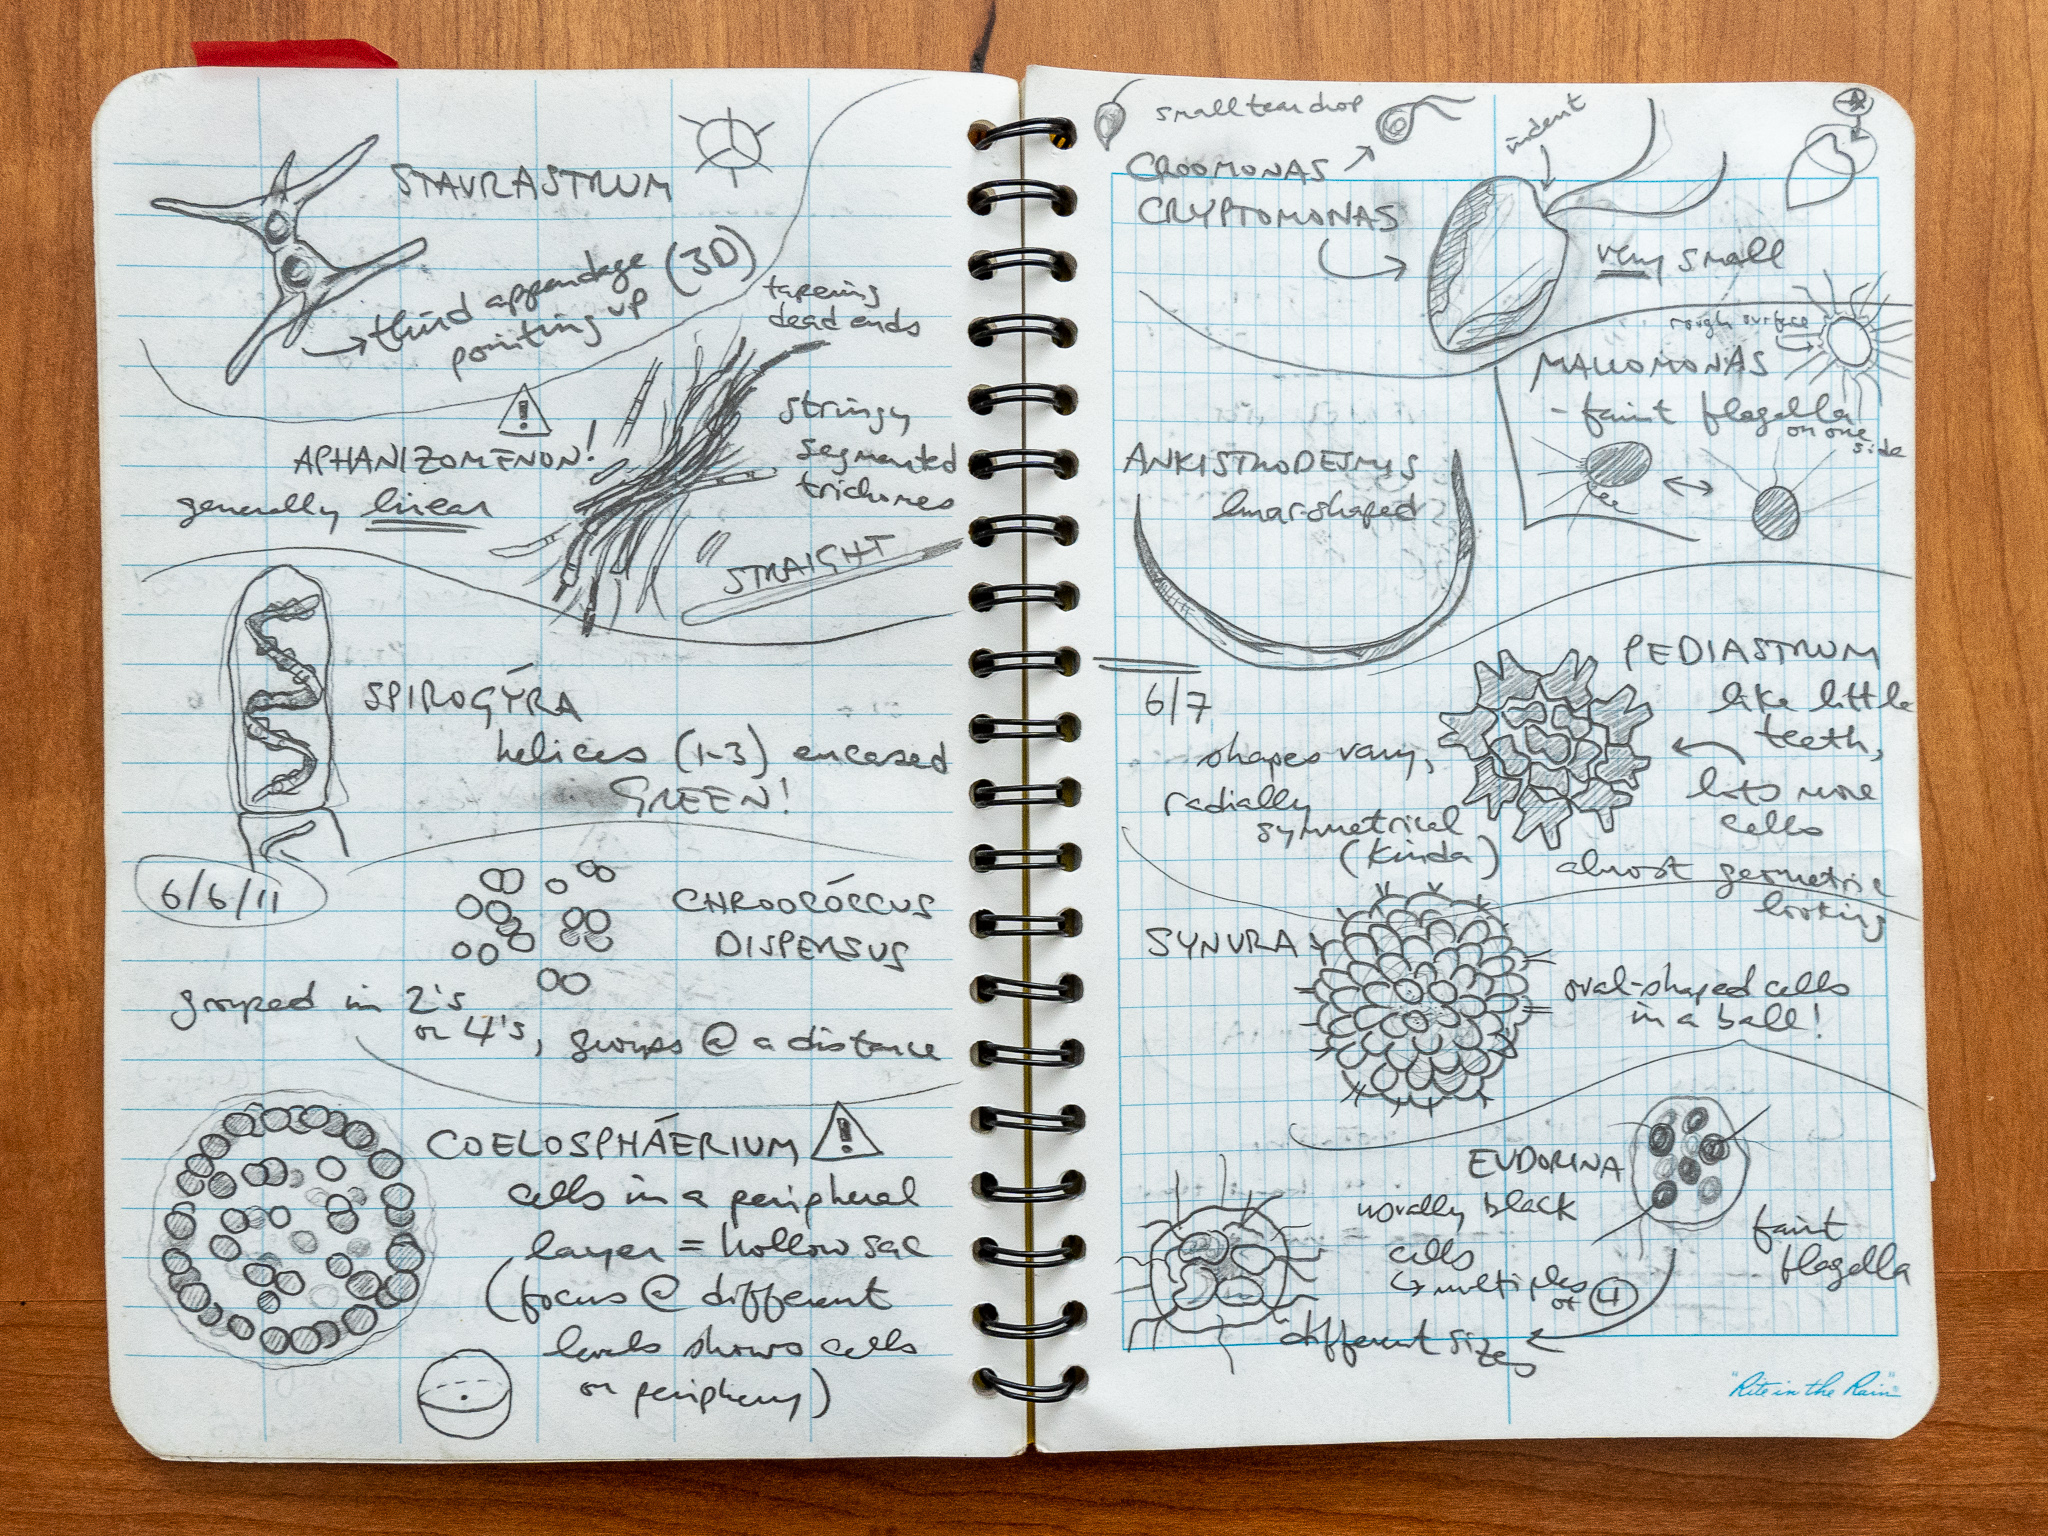 Photo of an open journal with handwritten notes and drawings